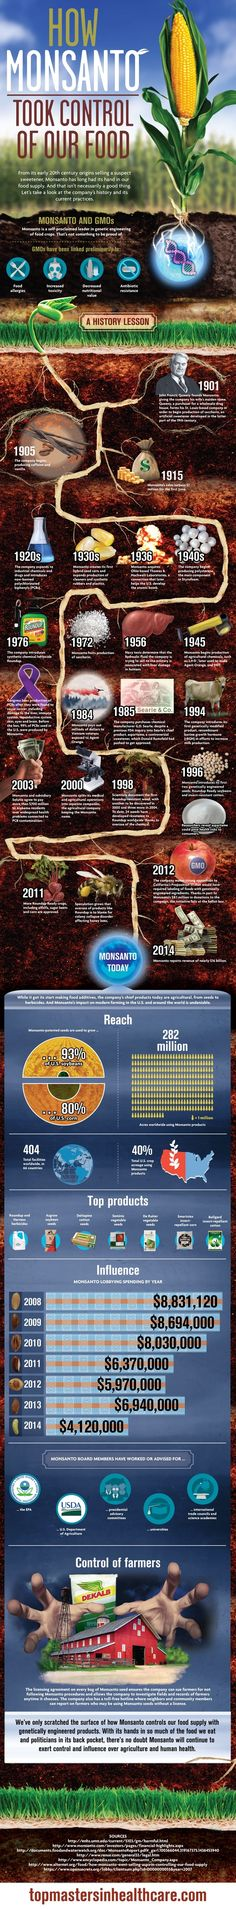 How Monsanto Took Control of our Food #infographic